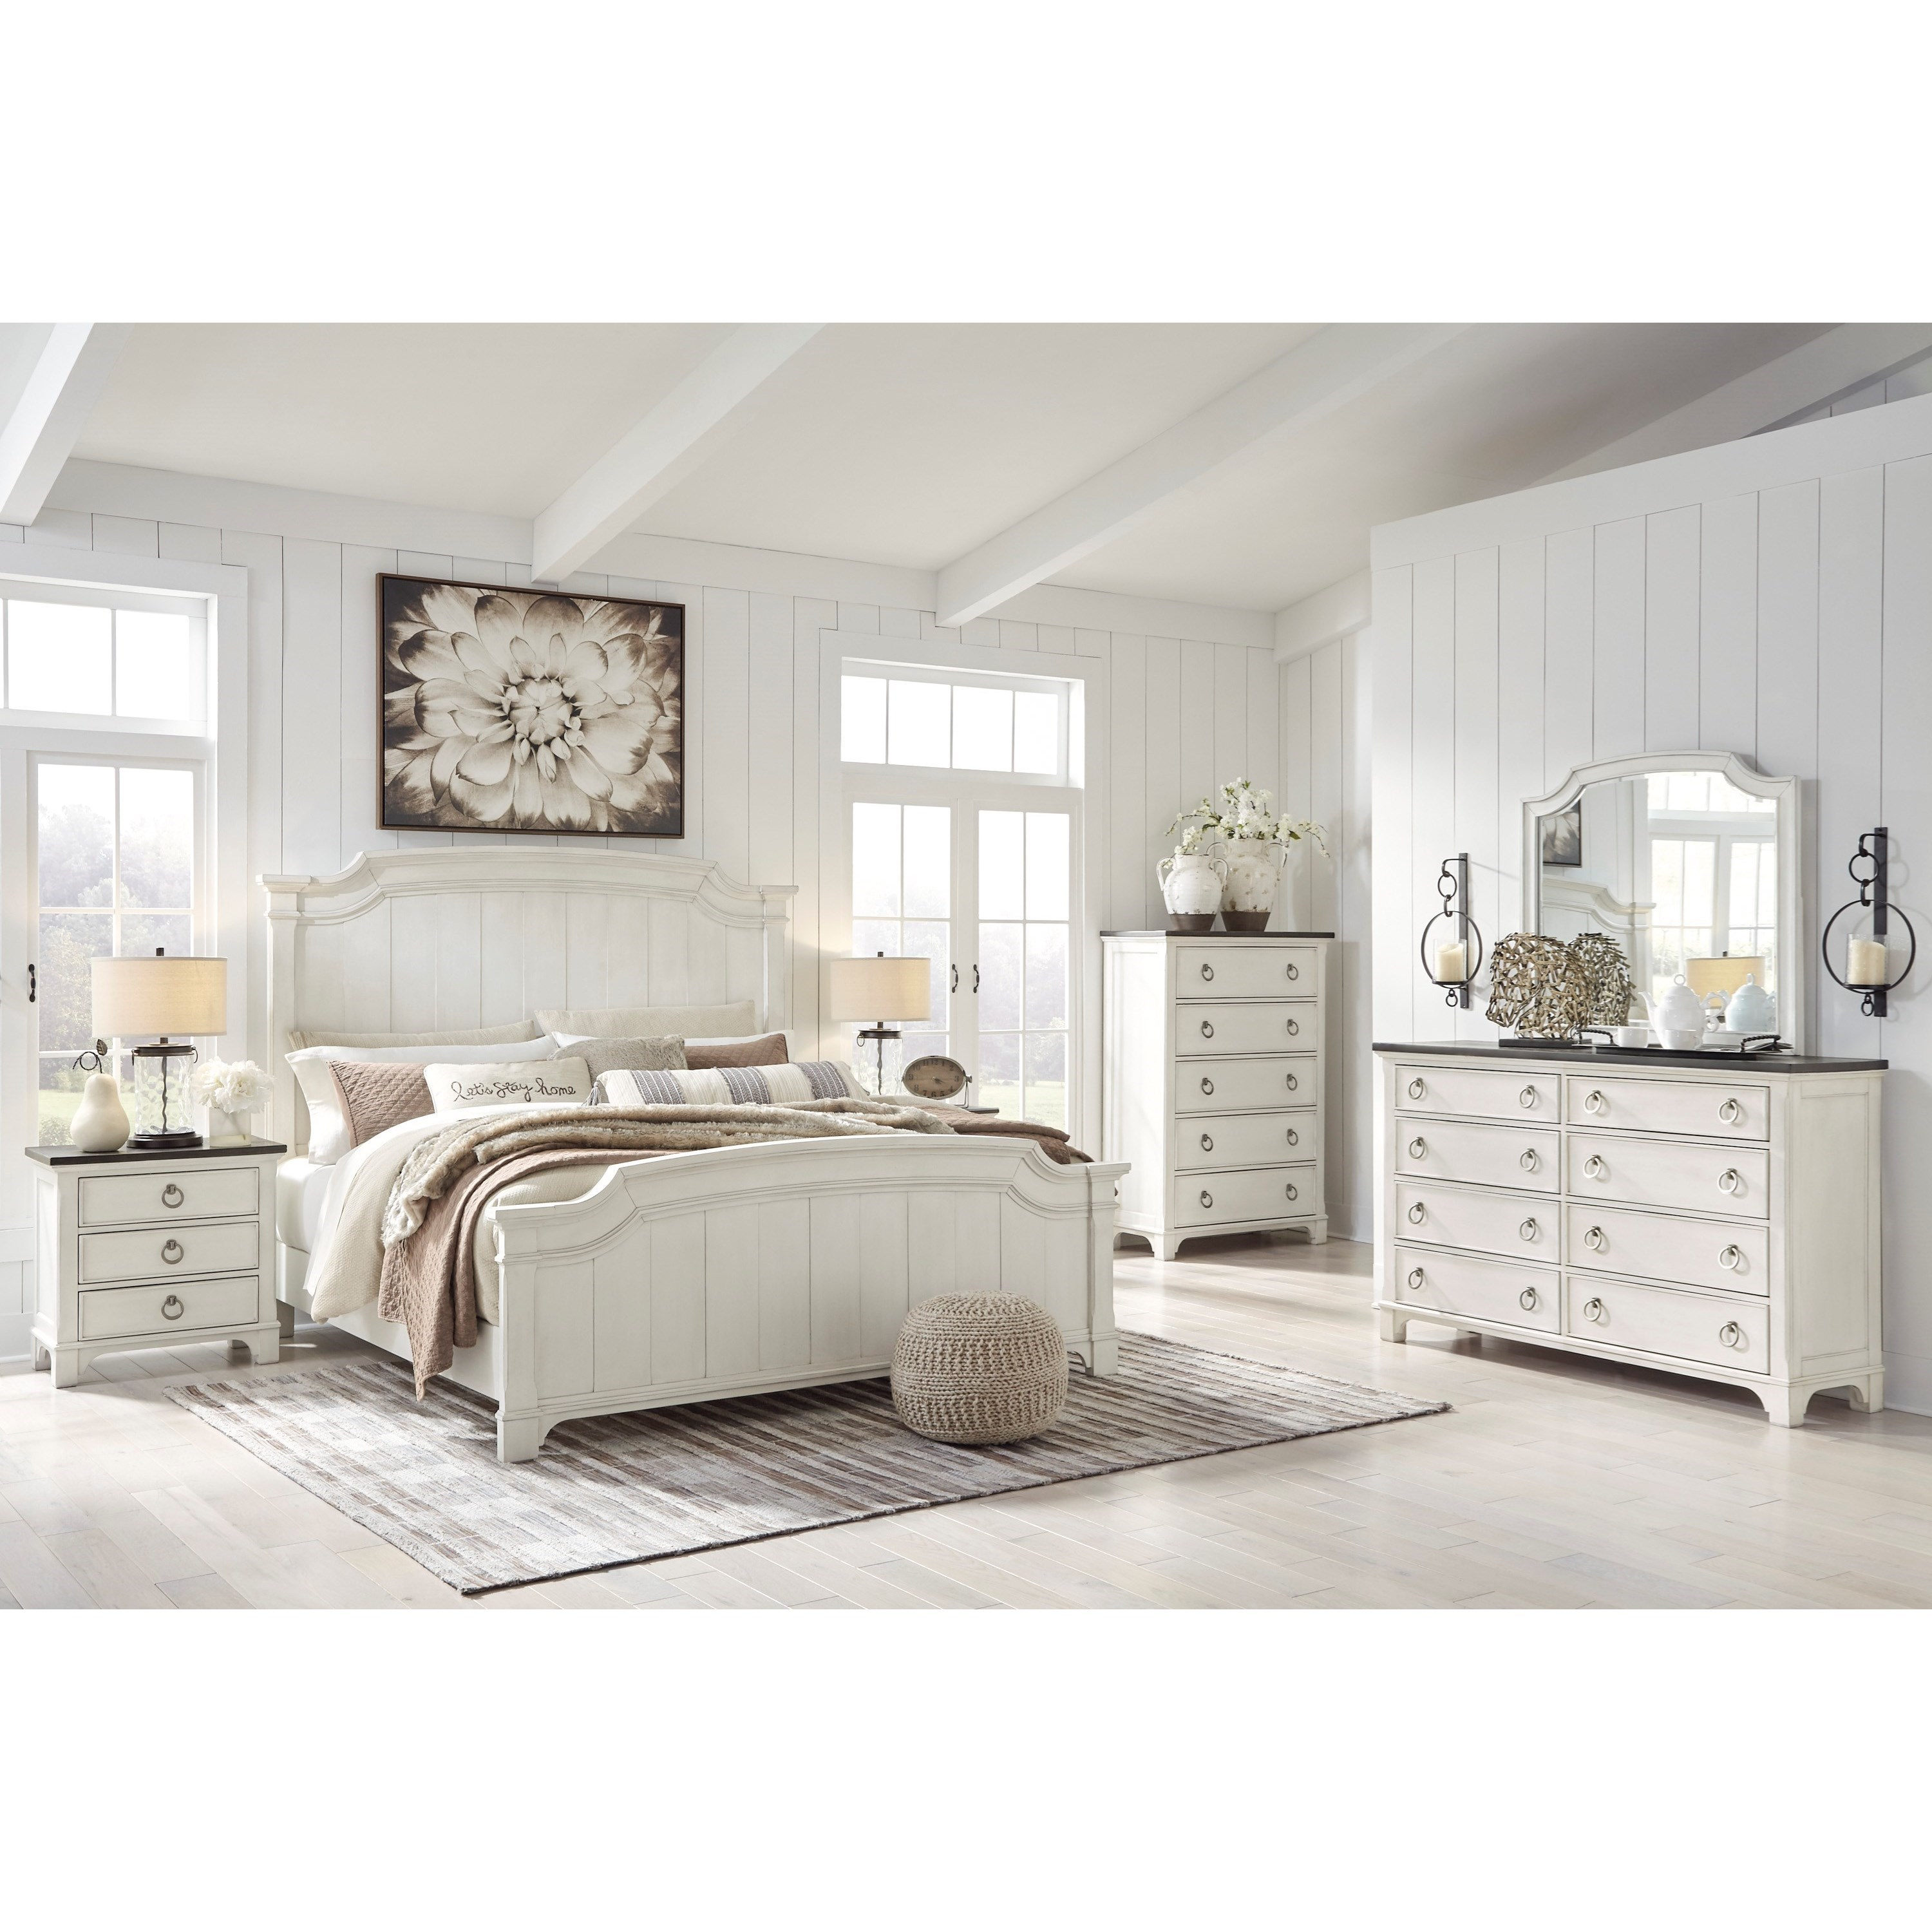 Nashbryn King Bedroom Group by Benchcraft at Northeast Factory Direct